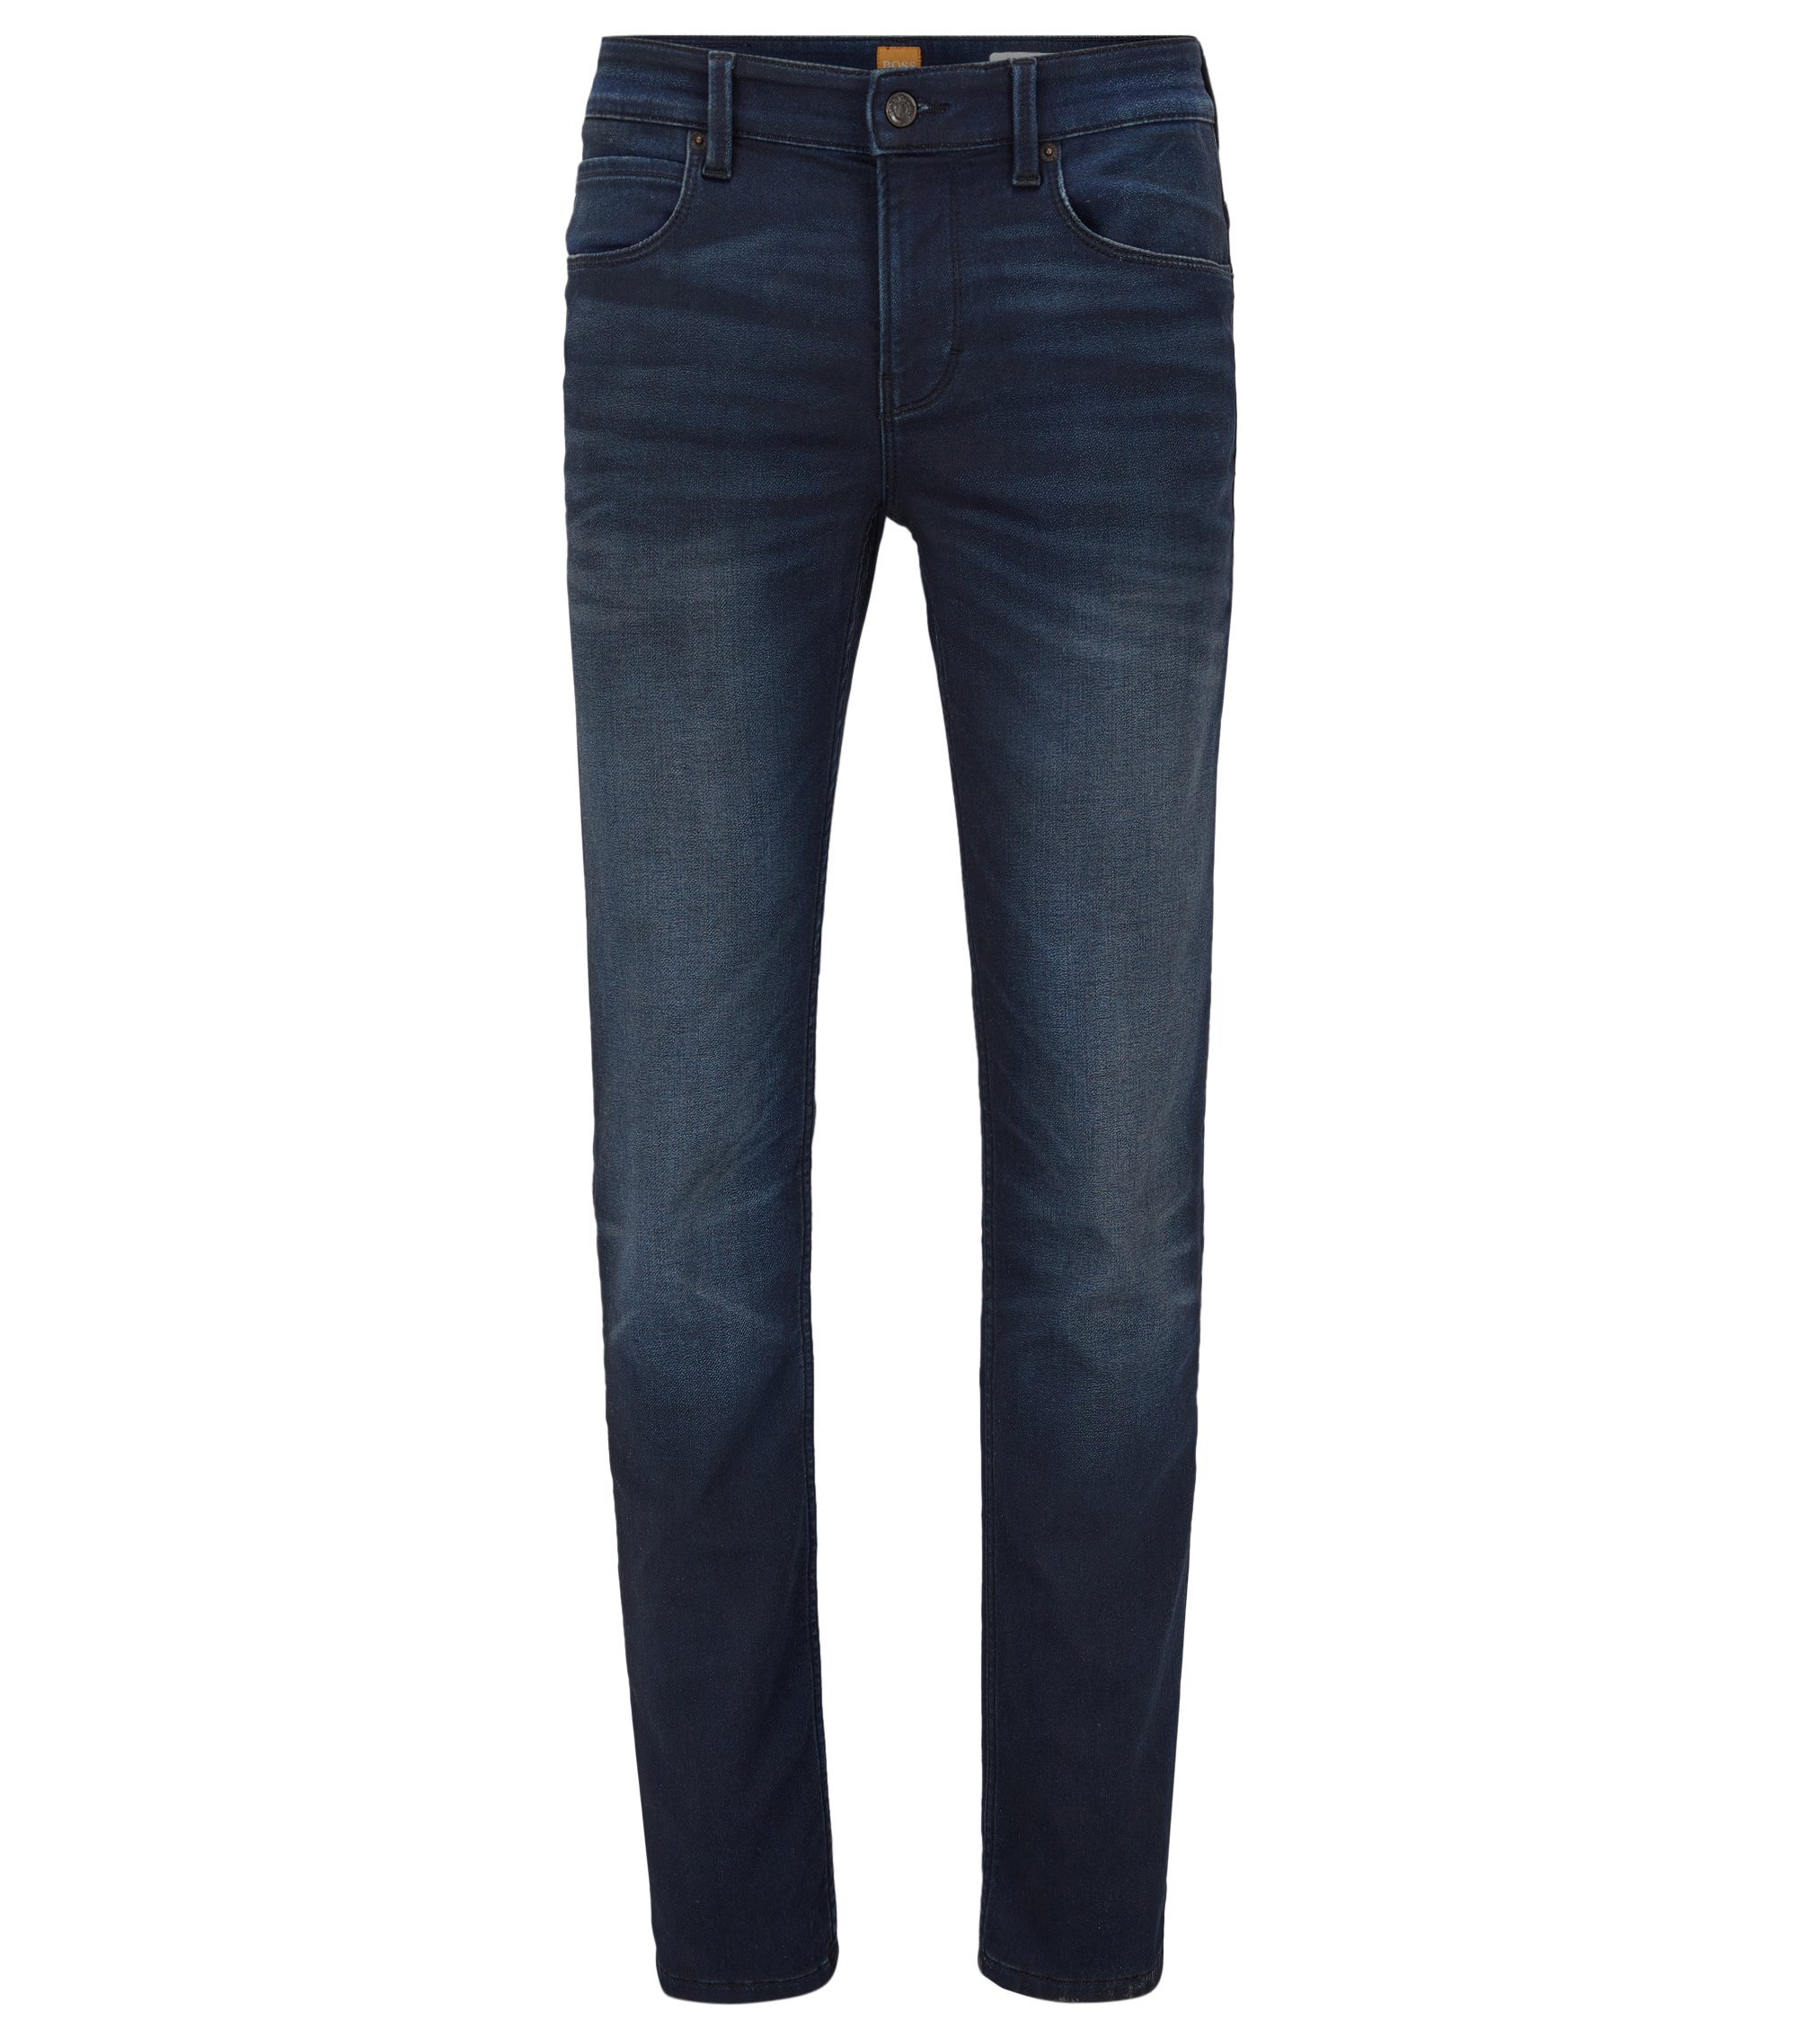 Jeans slim fit in denim in maglia, Blu scuro